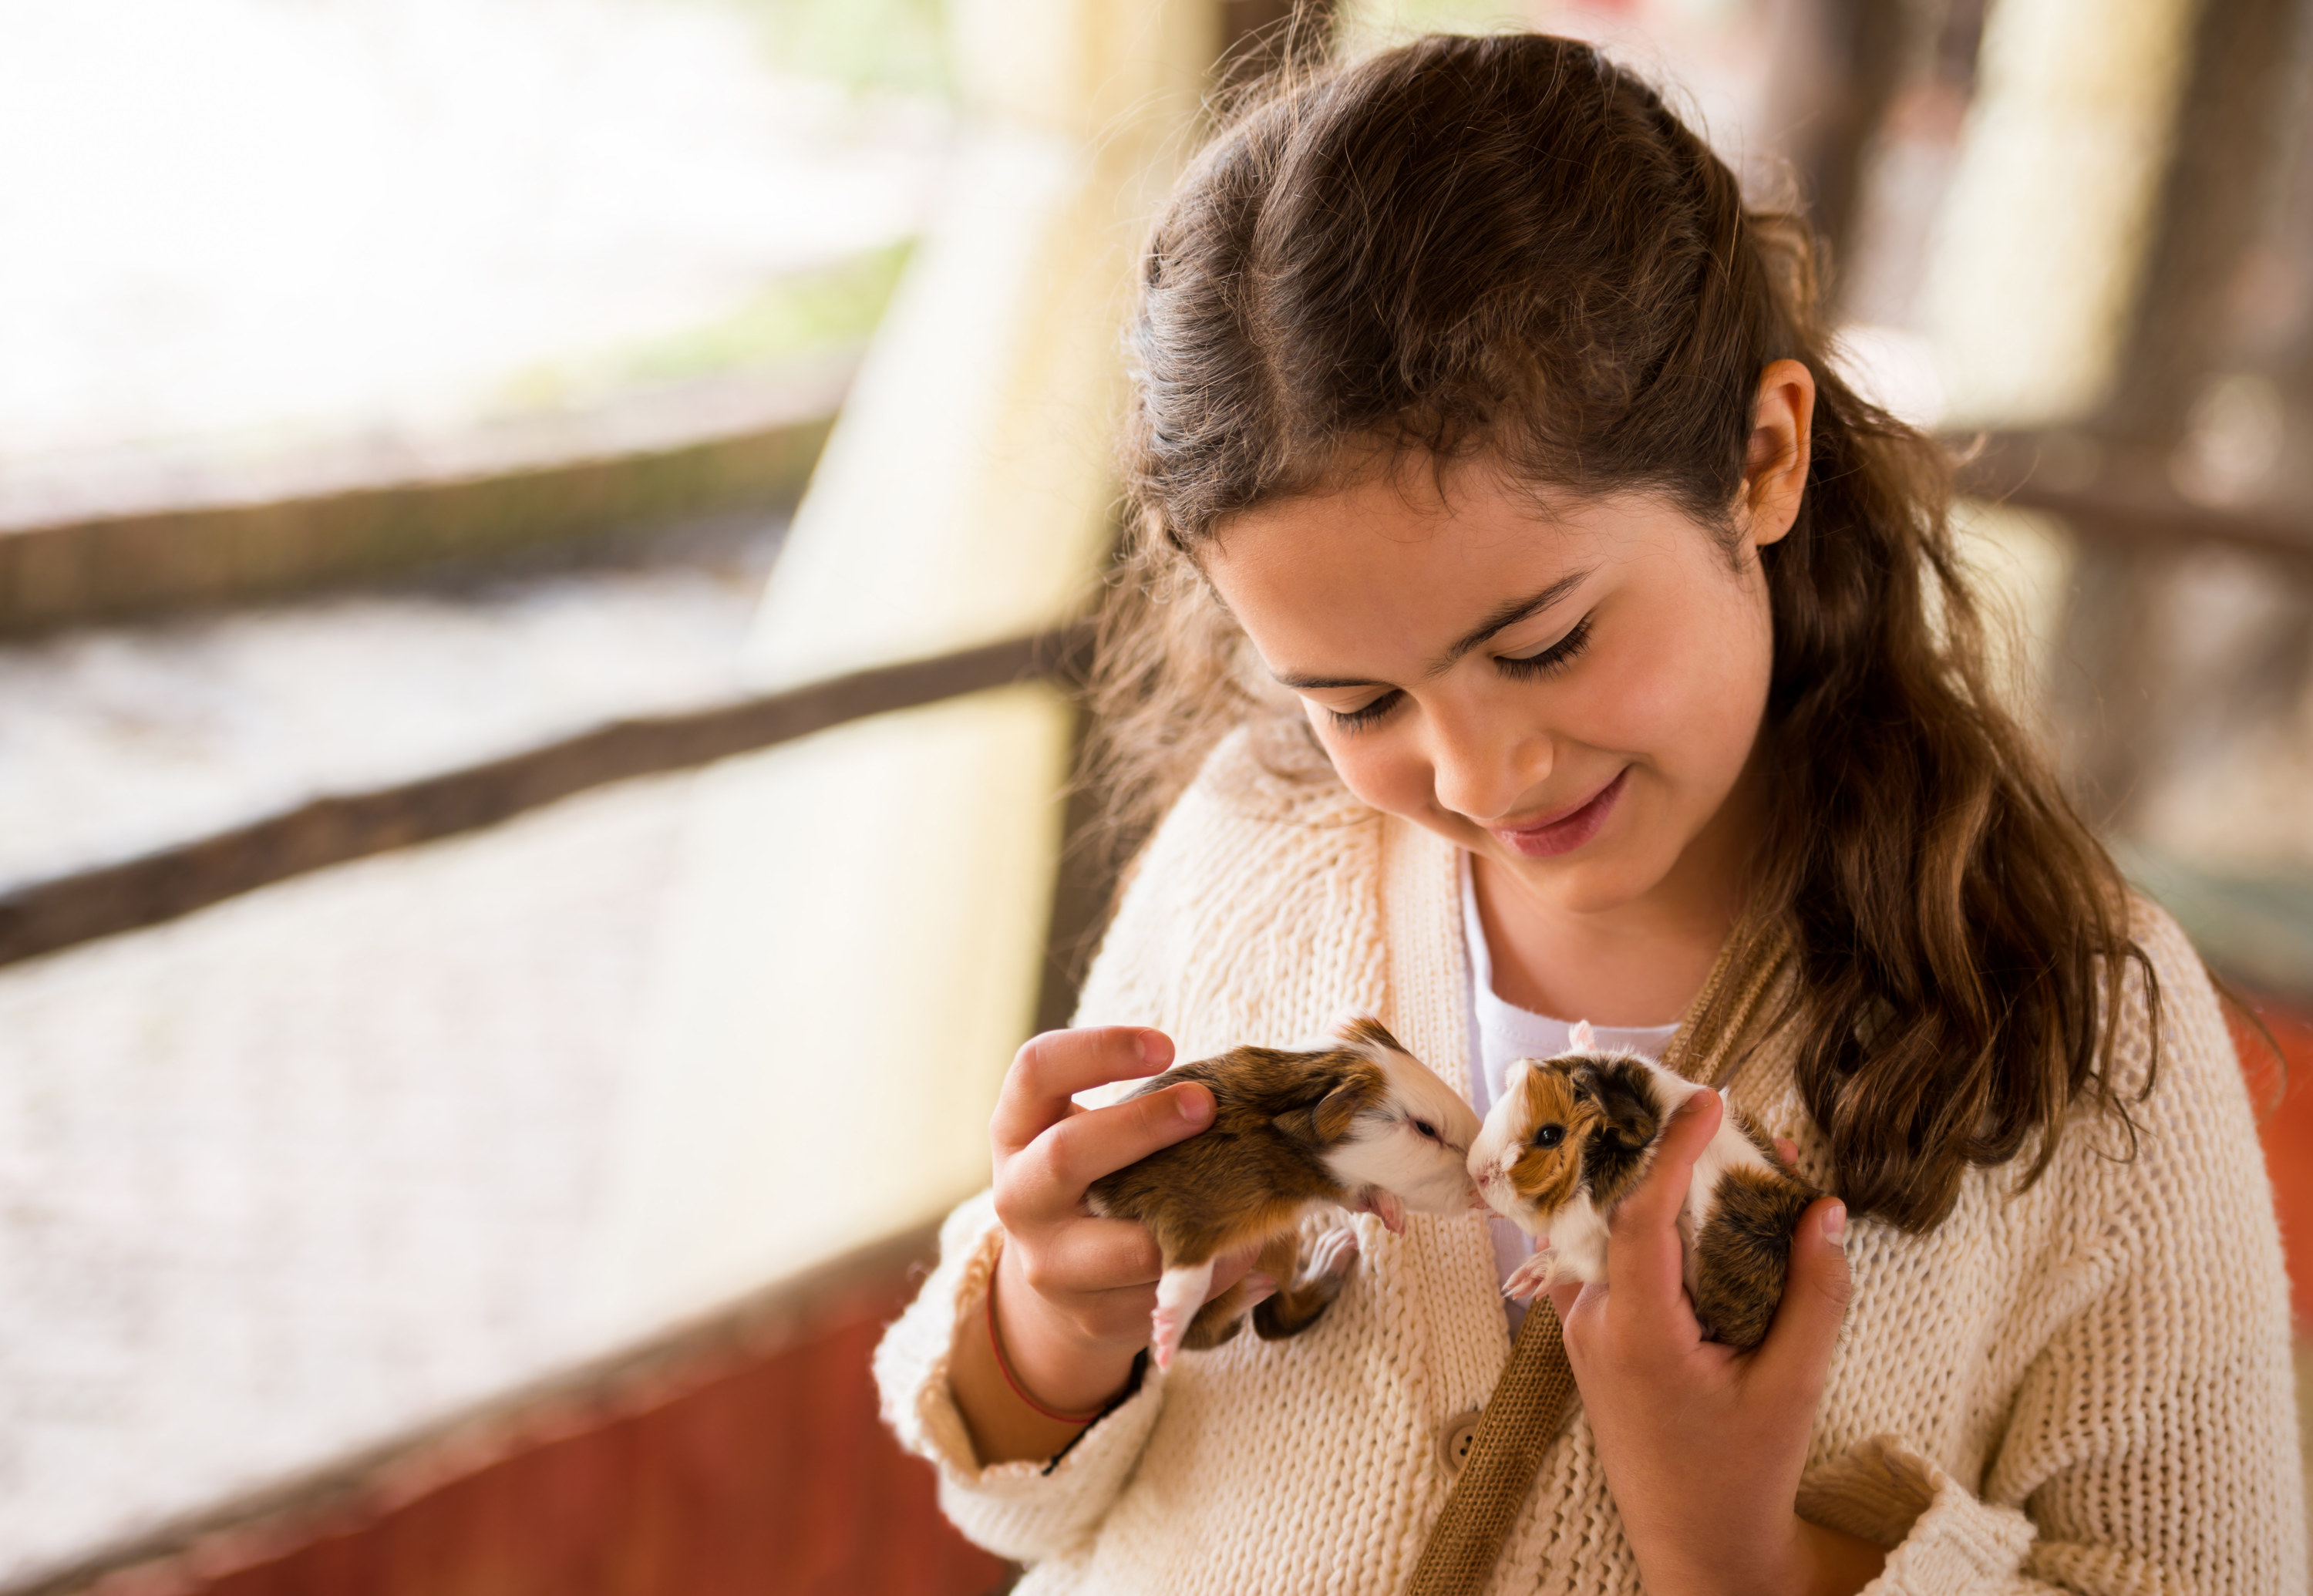 Young girl holding two guinea pigs with their noses touching each other's.